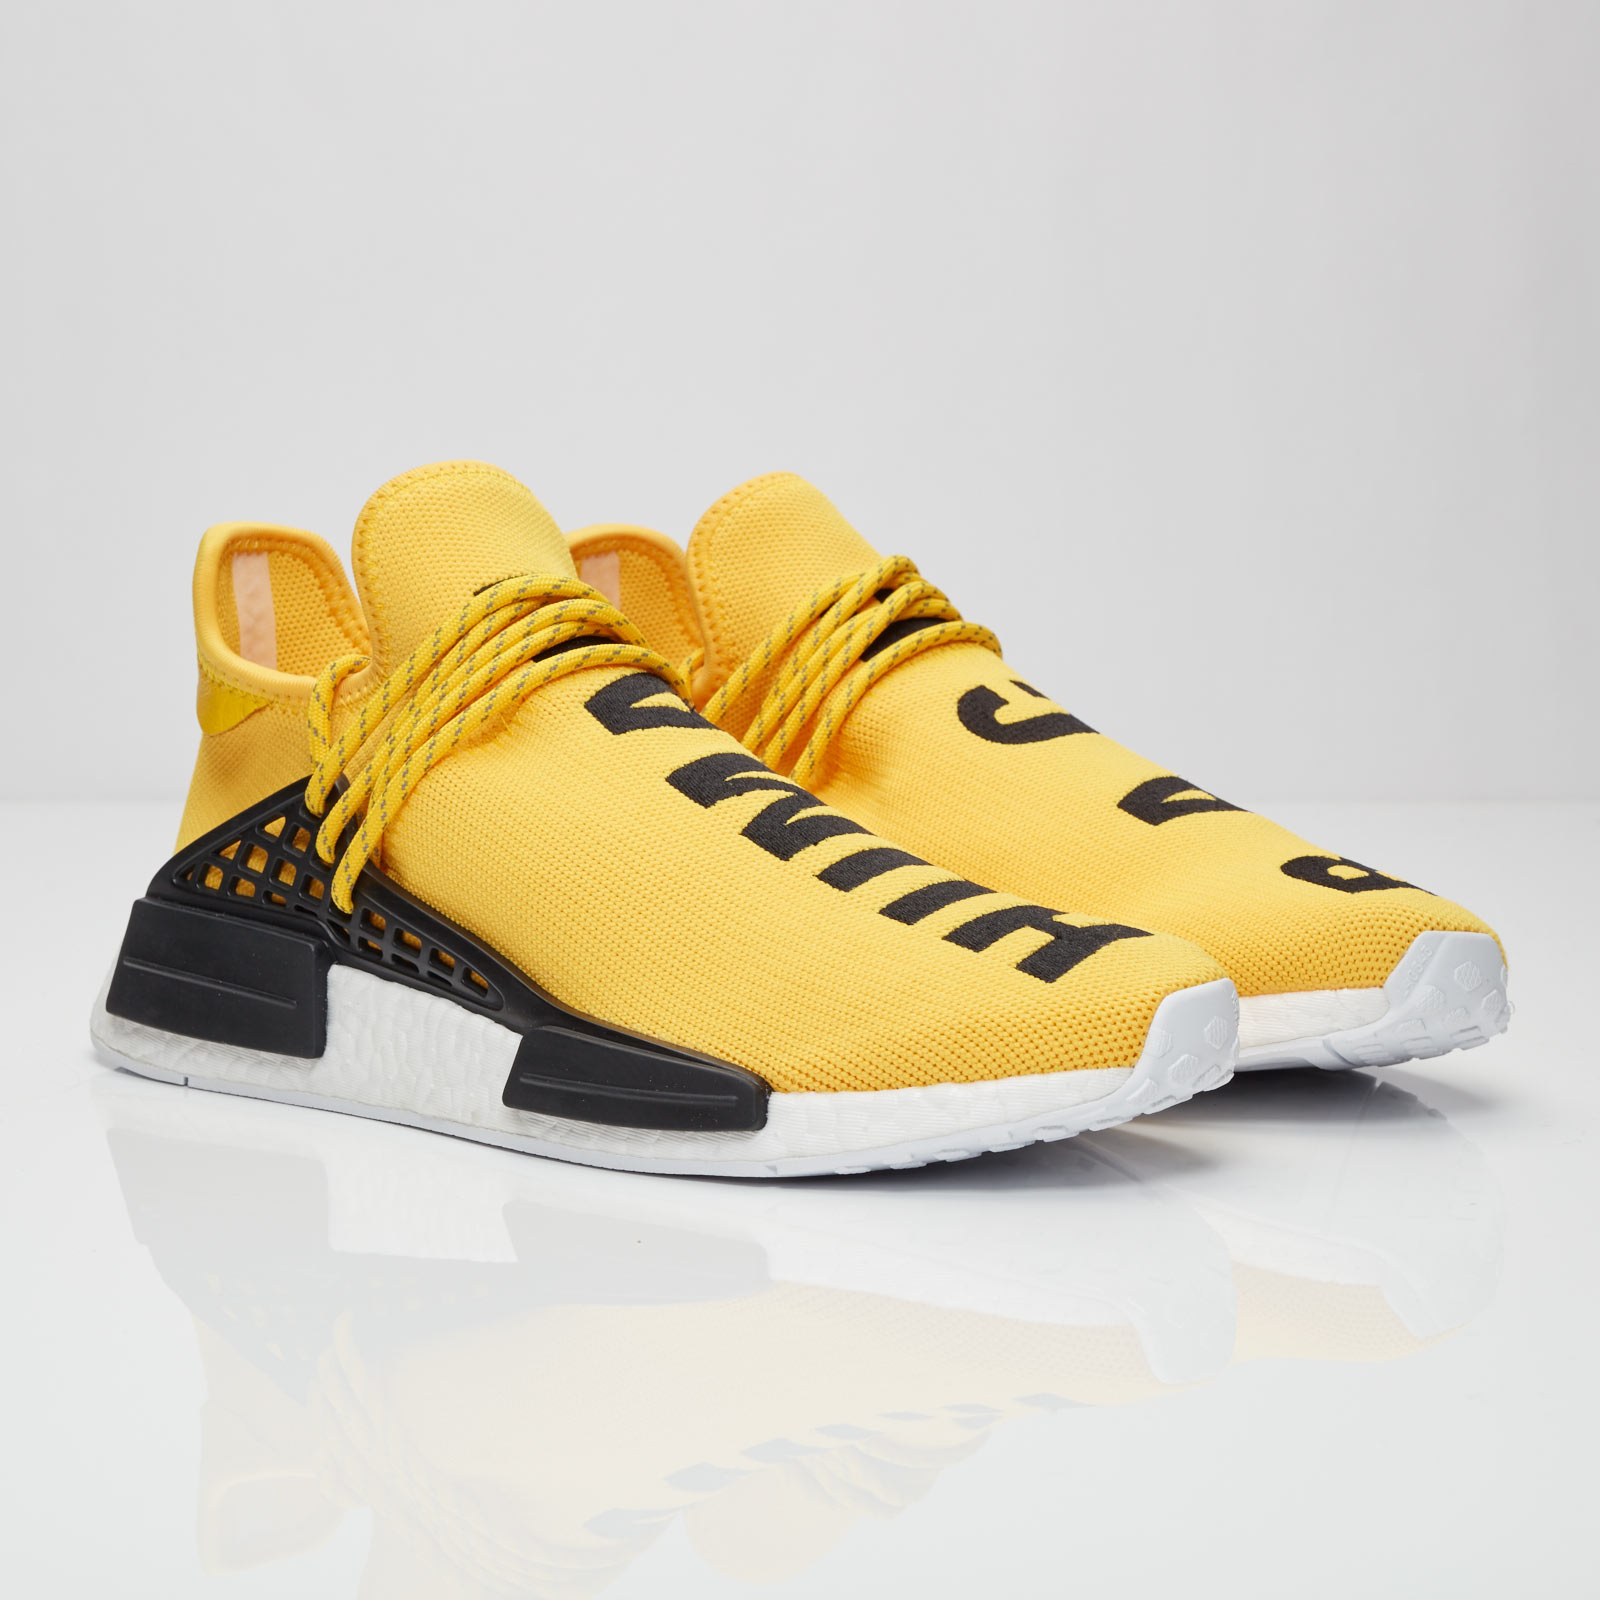 bfd30de3c97 adidas PW Human Race NMD - Bb0619 - Sneakersnstuff